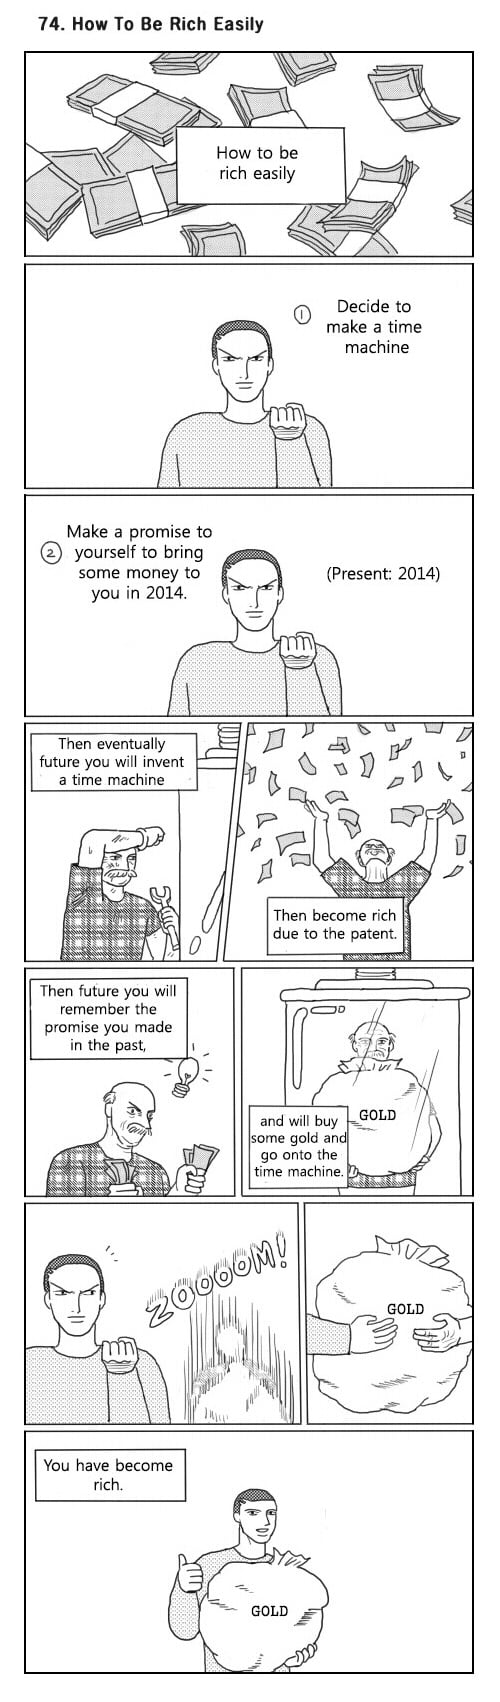 how to invent a time machine